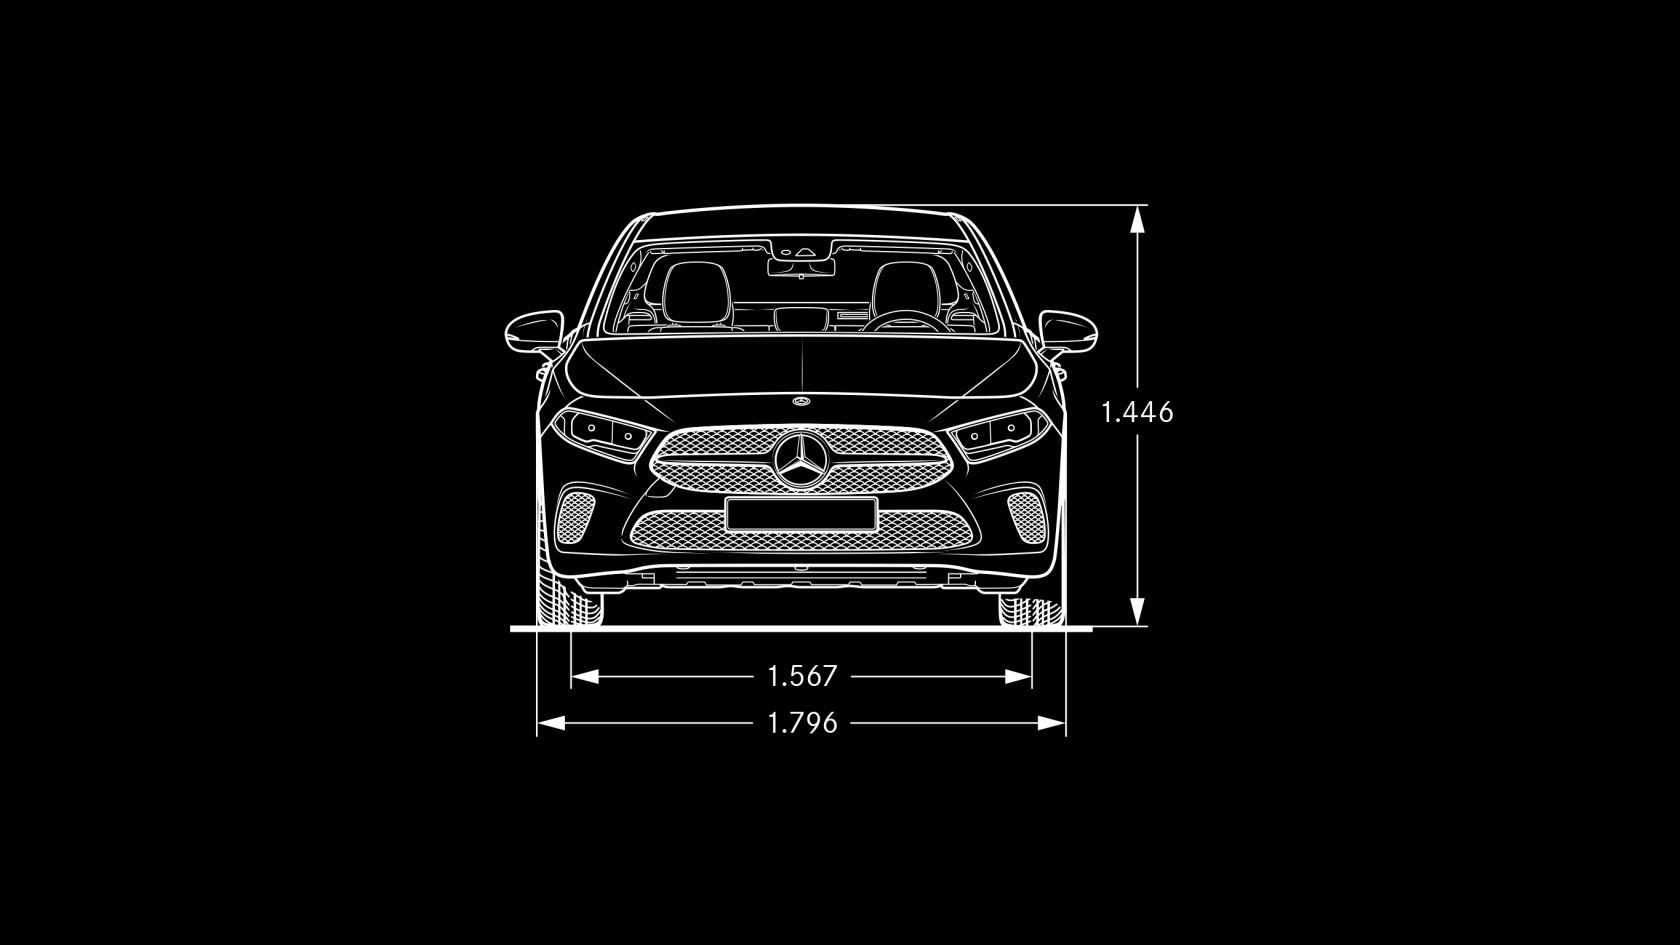 Mercedes Benz A Class Saloon Specifications